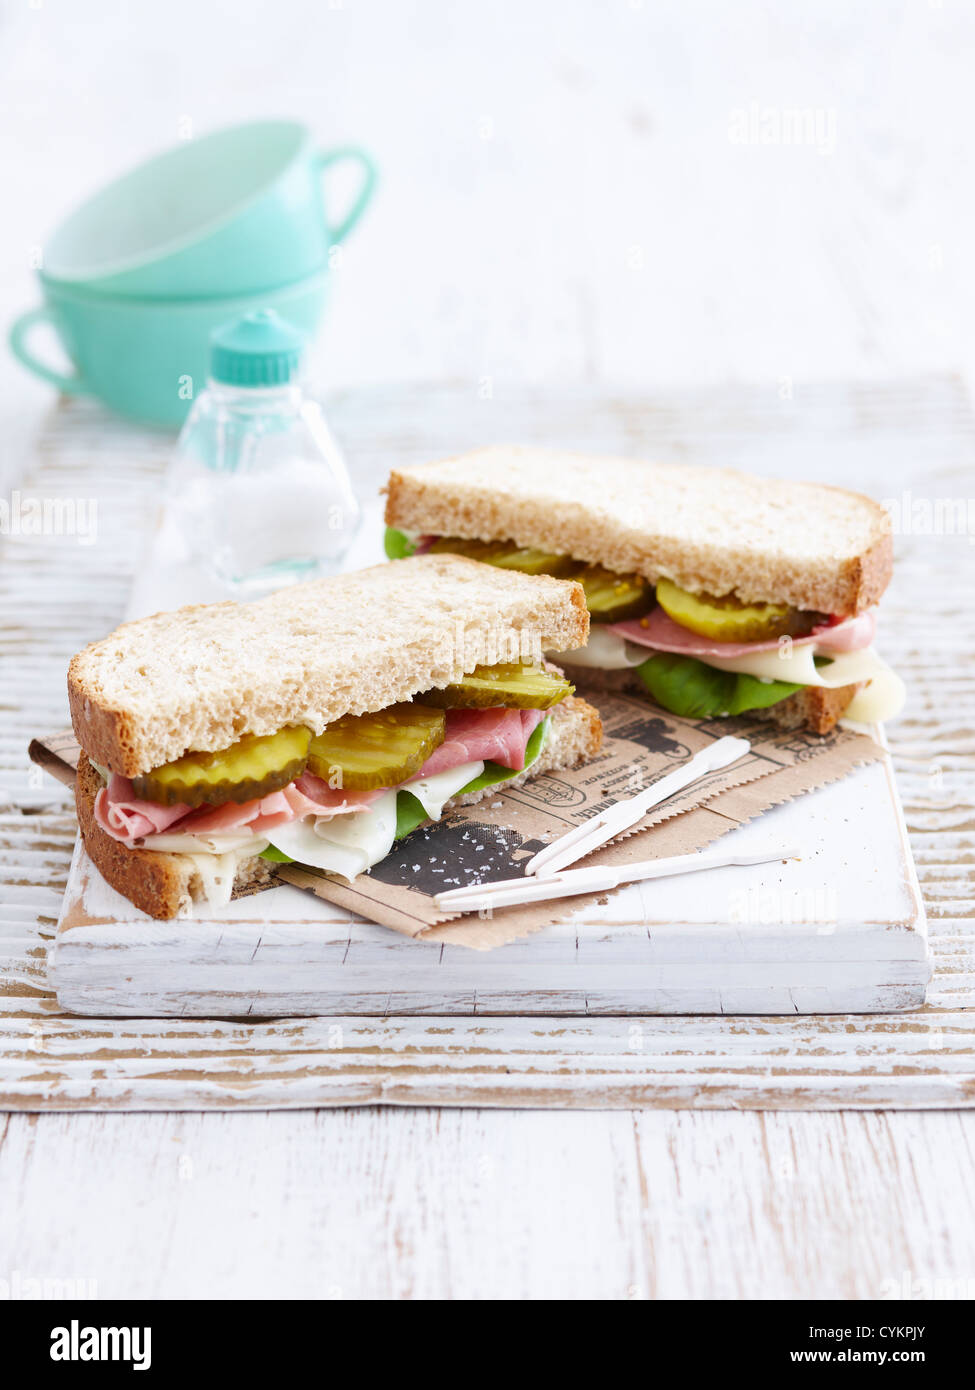 Sandwich with pickles and ham - Stock Image